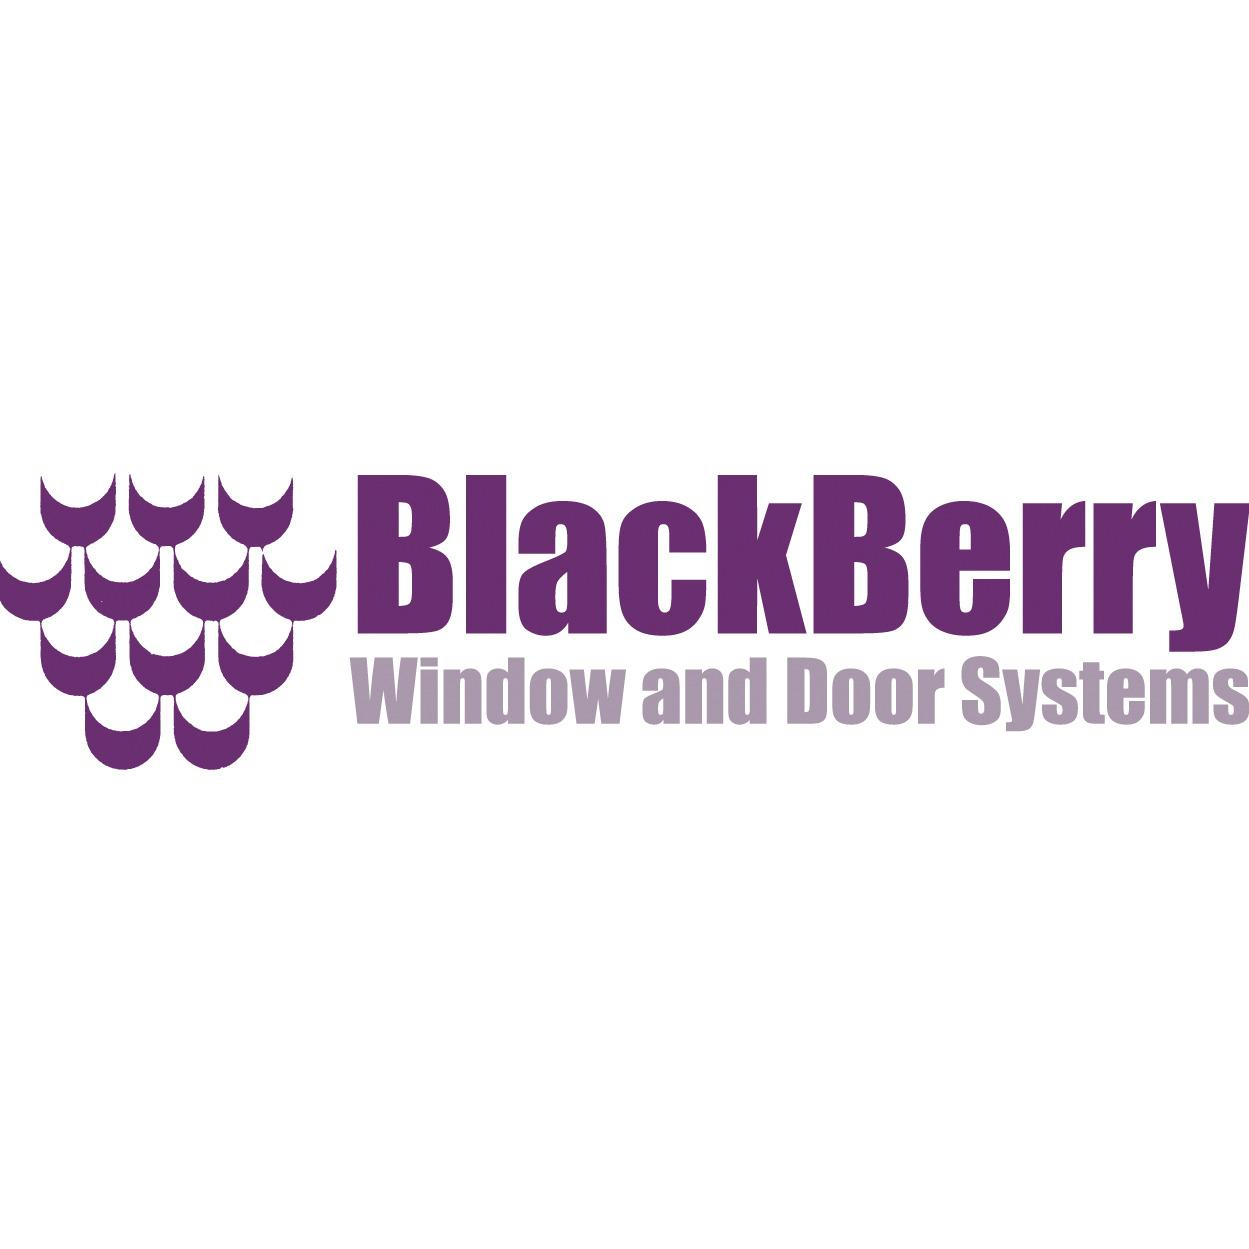 BlackBerry Systems